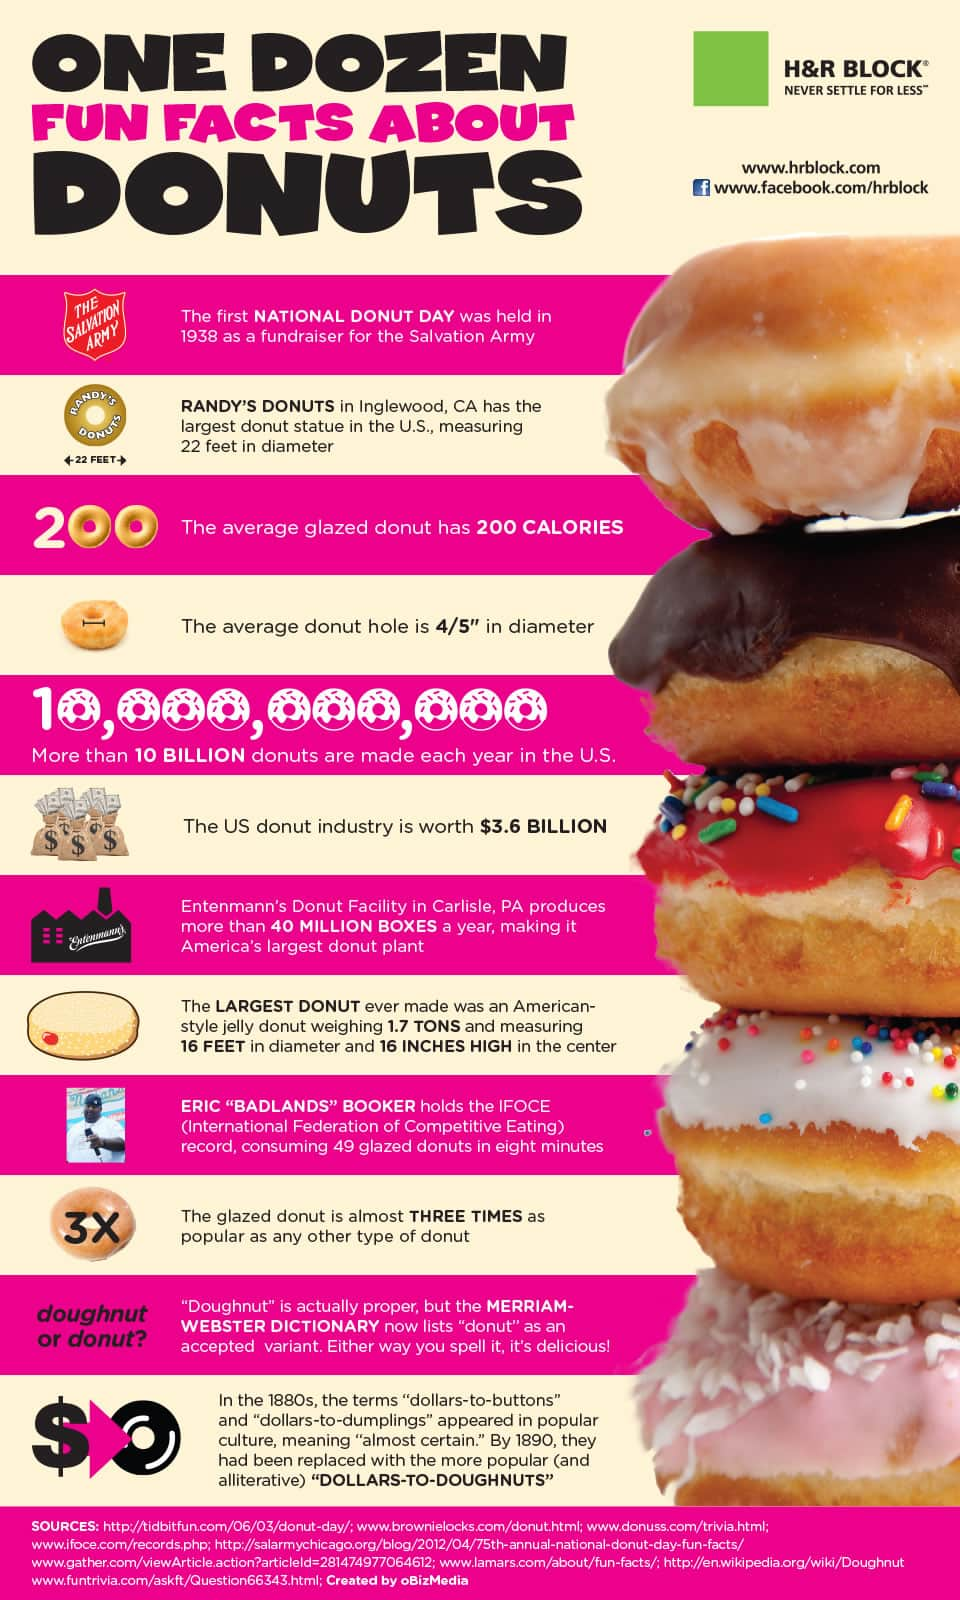 Infographic: One Dozen Fun Facts About Donuts